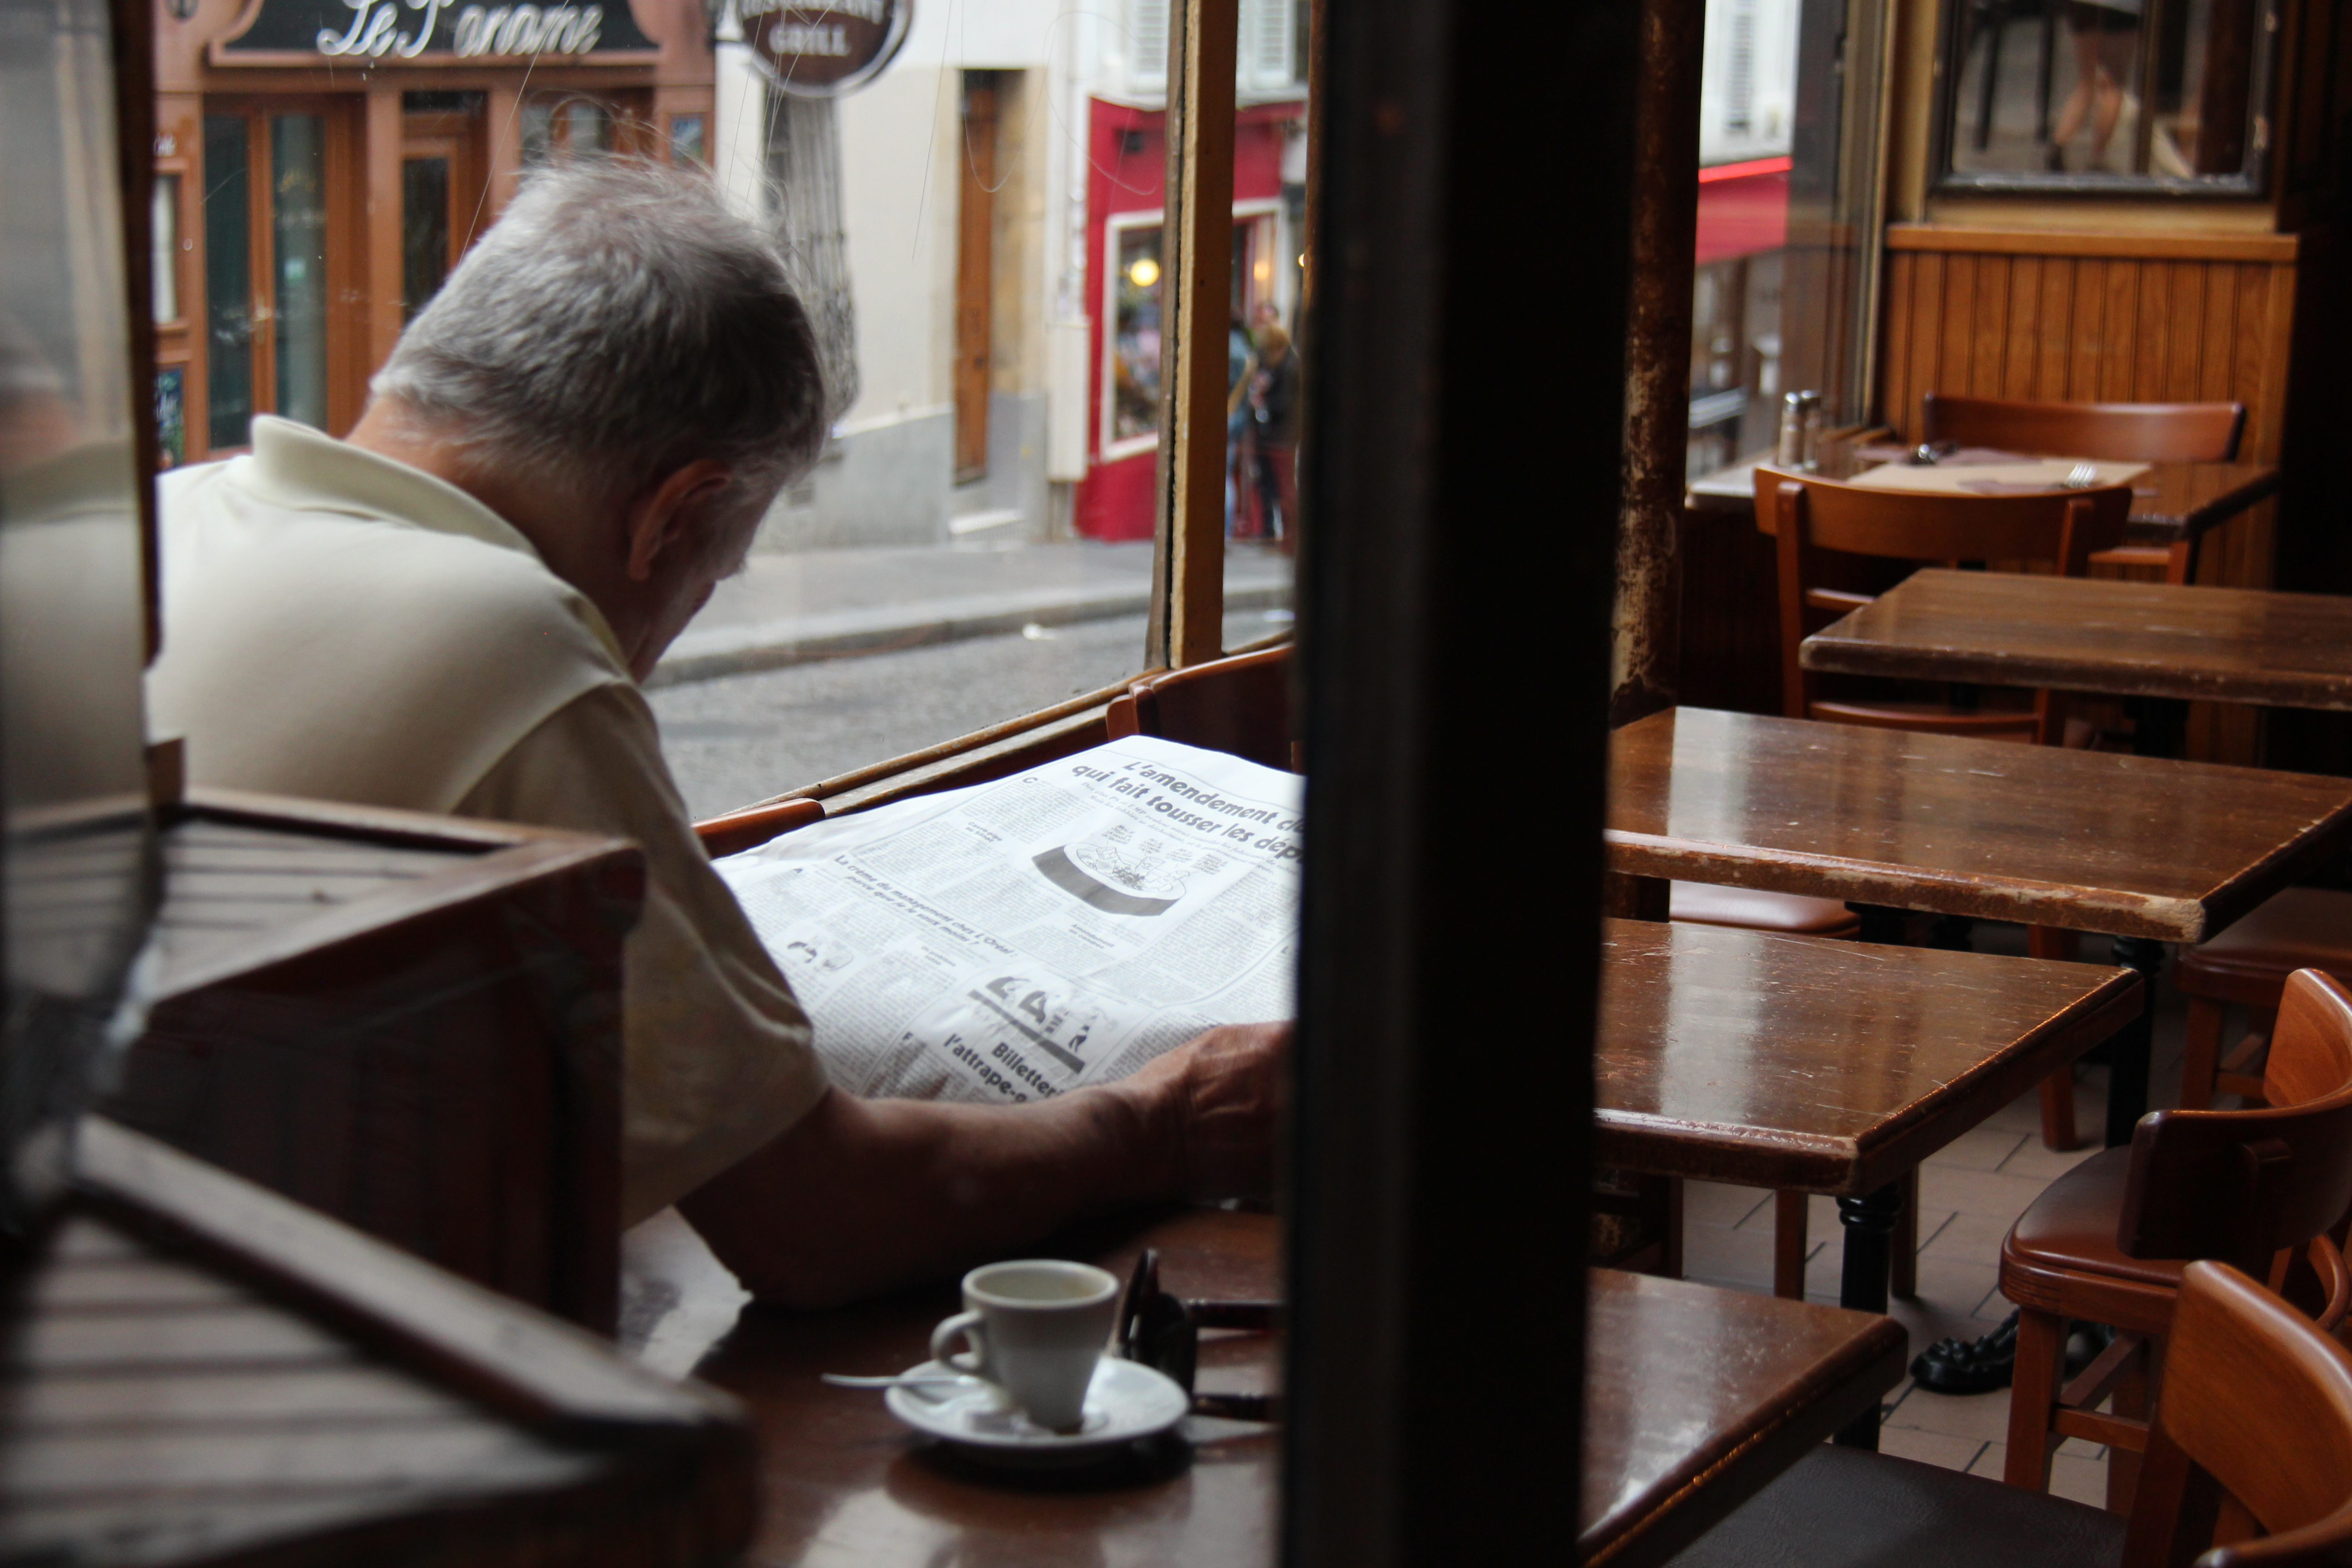 Man reading the newspaper at a cafe in Paris, France